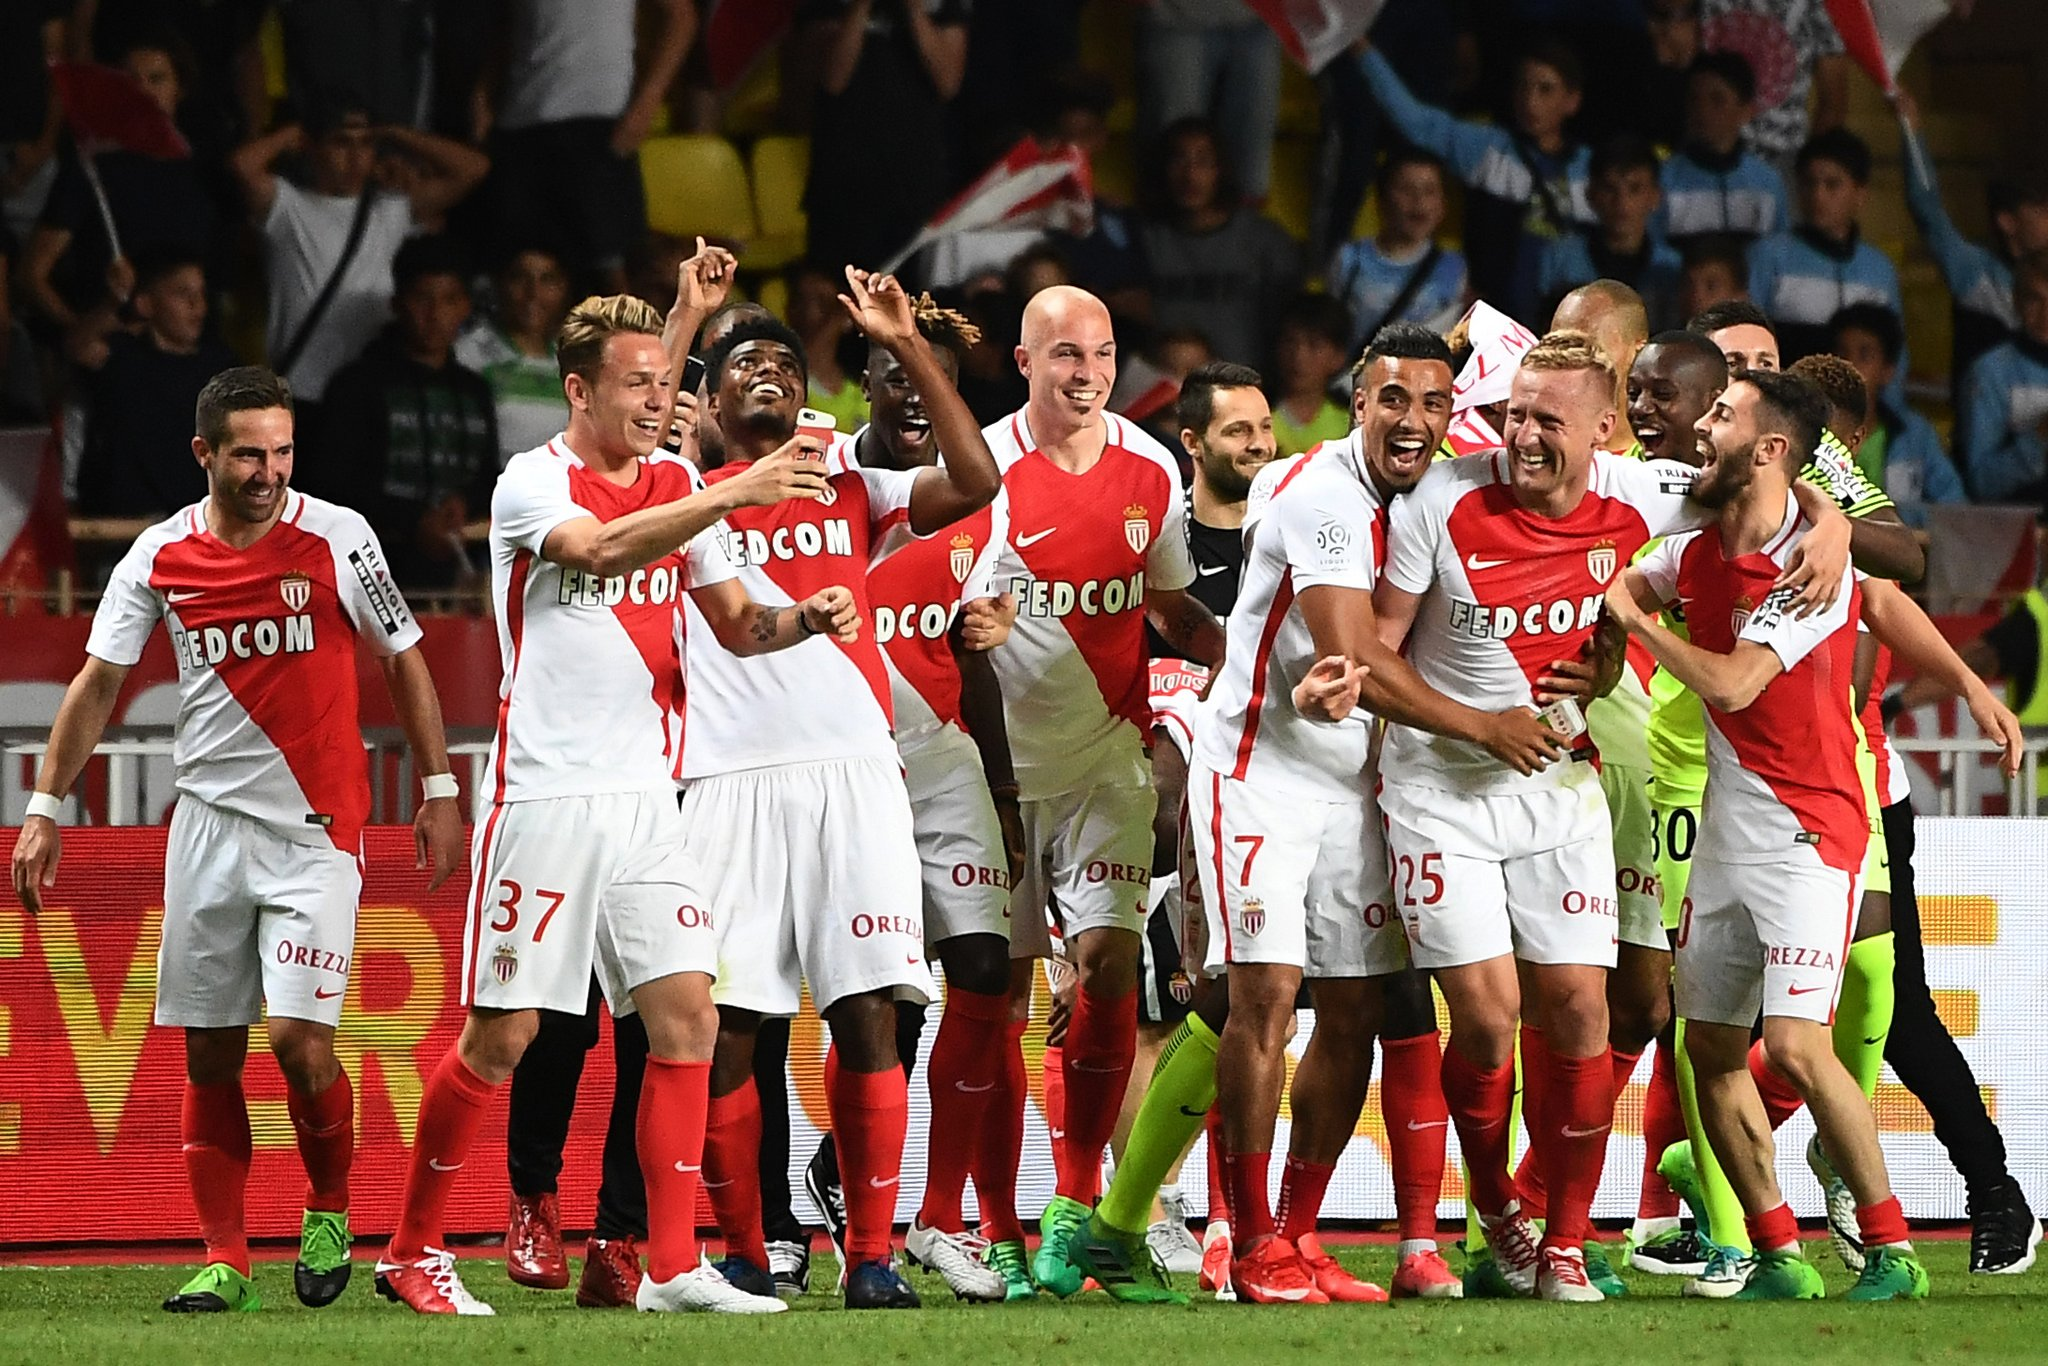 Monaco officially became the champion of France